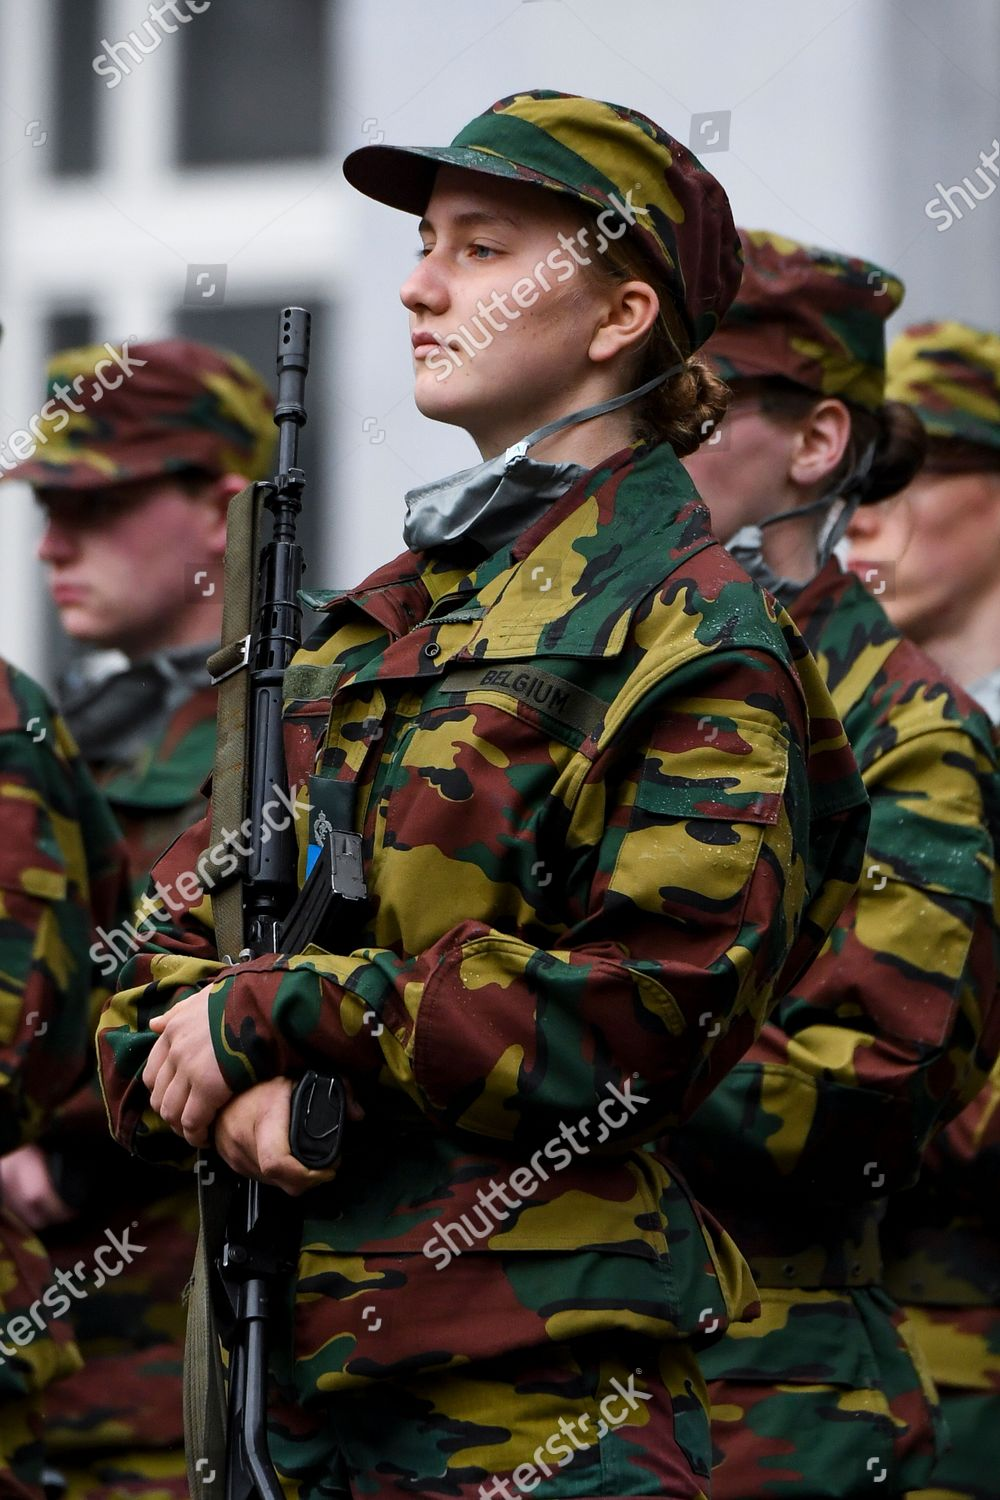 belgian-royals-attend-ceremony-for-the-presentation-of-the-blue-berets-royal-military-academy-erm-brussels-belgium-shutterstock-editorial-10790437al.jpg